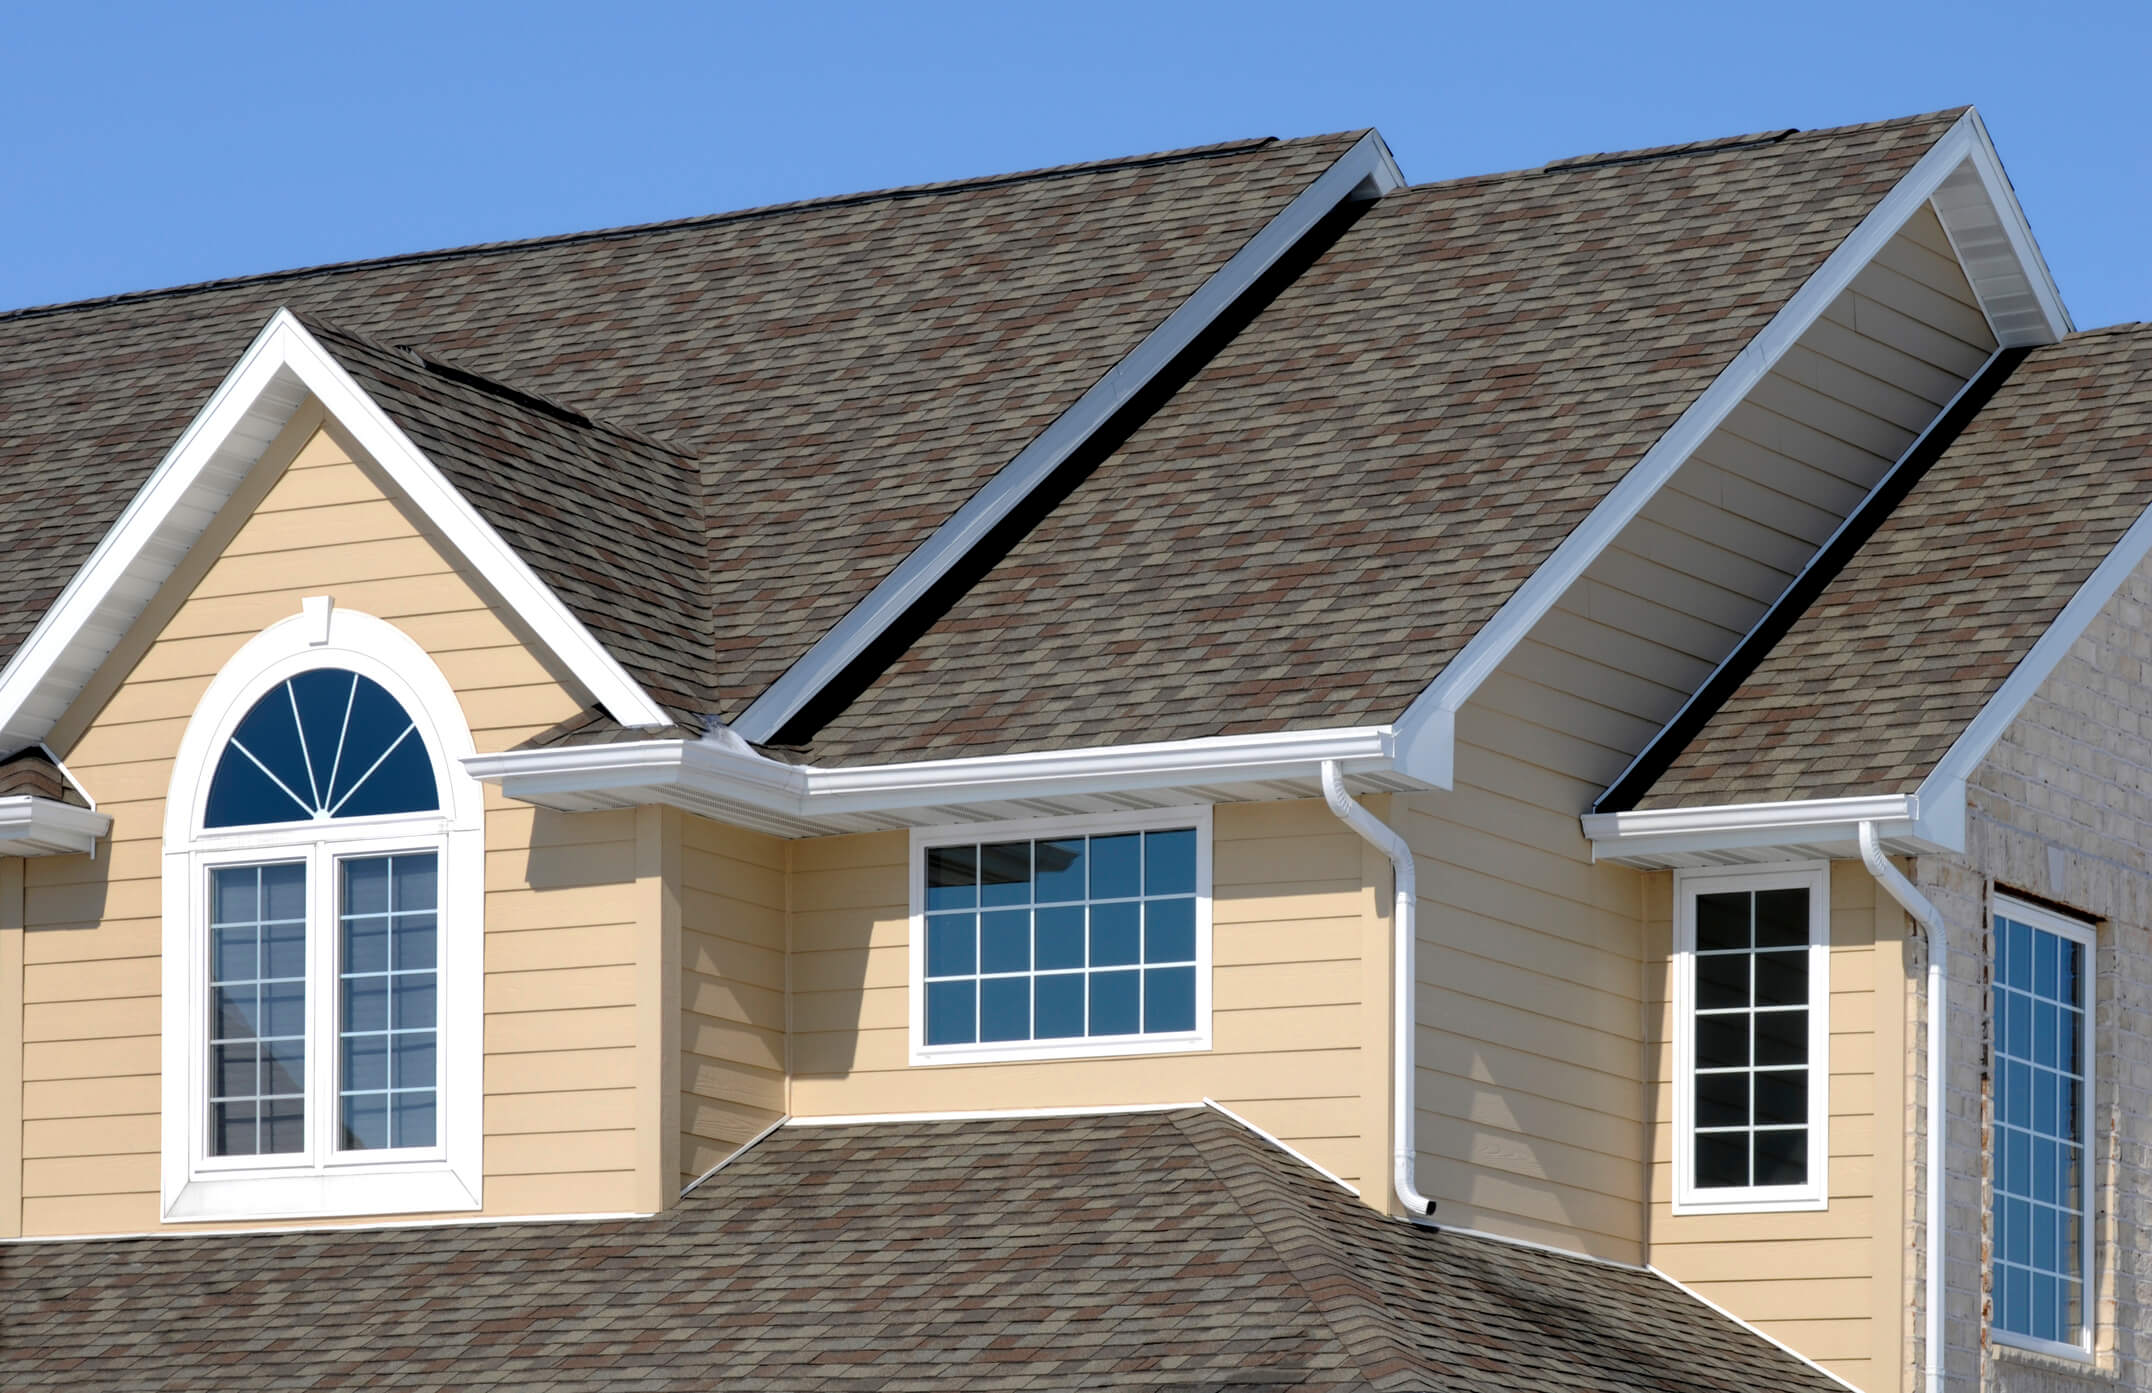 Roofs-that-last.jpg & Roof Siding u0026 Details Exterior Home House Siding Roofing ... Sc 1 ... memphite.com